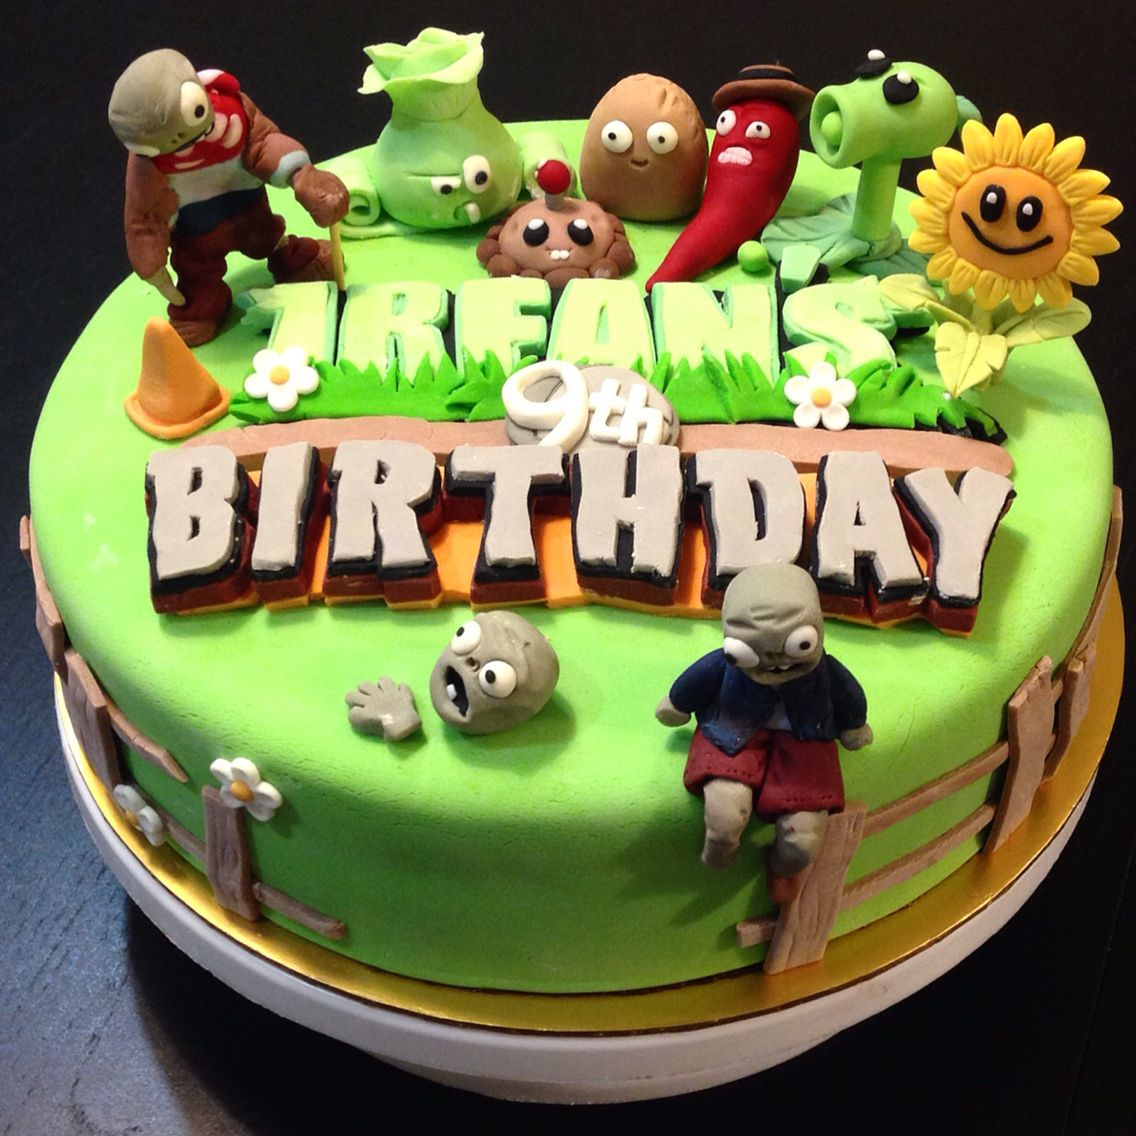 Awe Inspiring Plants Vs Zombies Cake Zombie Cake Plants Vs Zombies Cake Birthday Cards Printable Opercafe Filternl